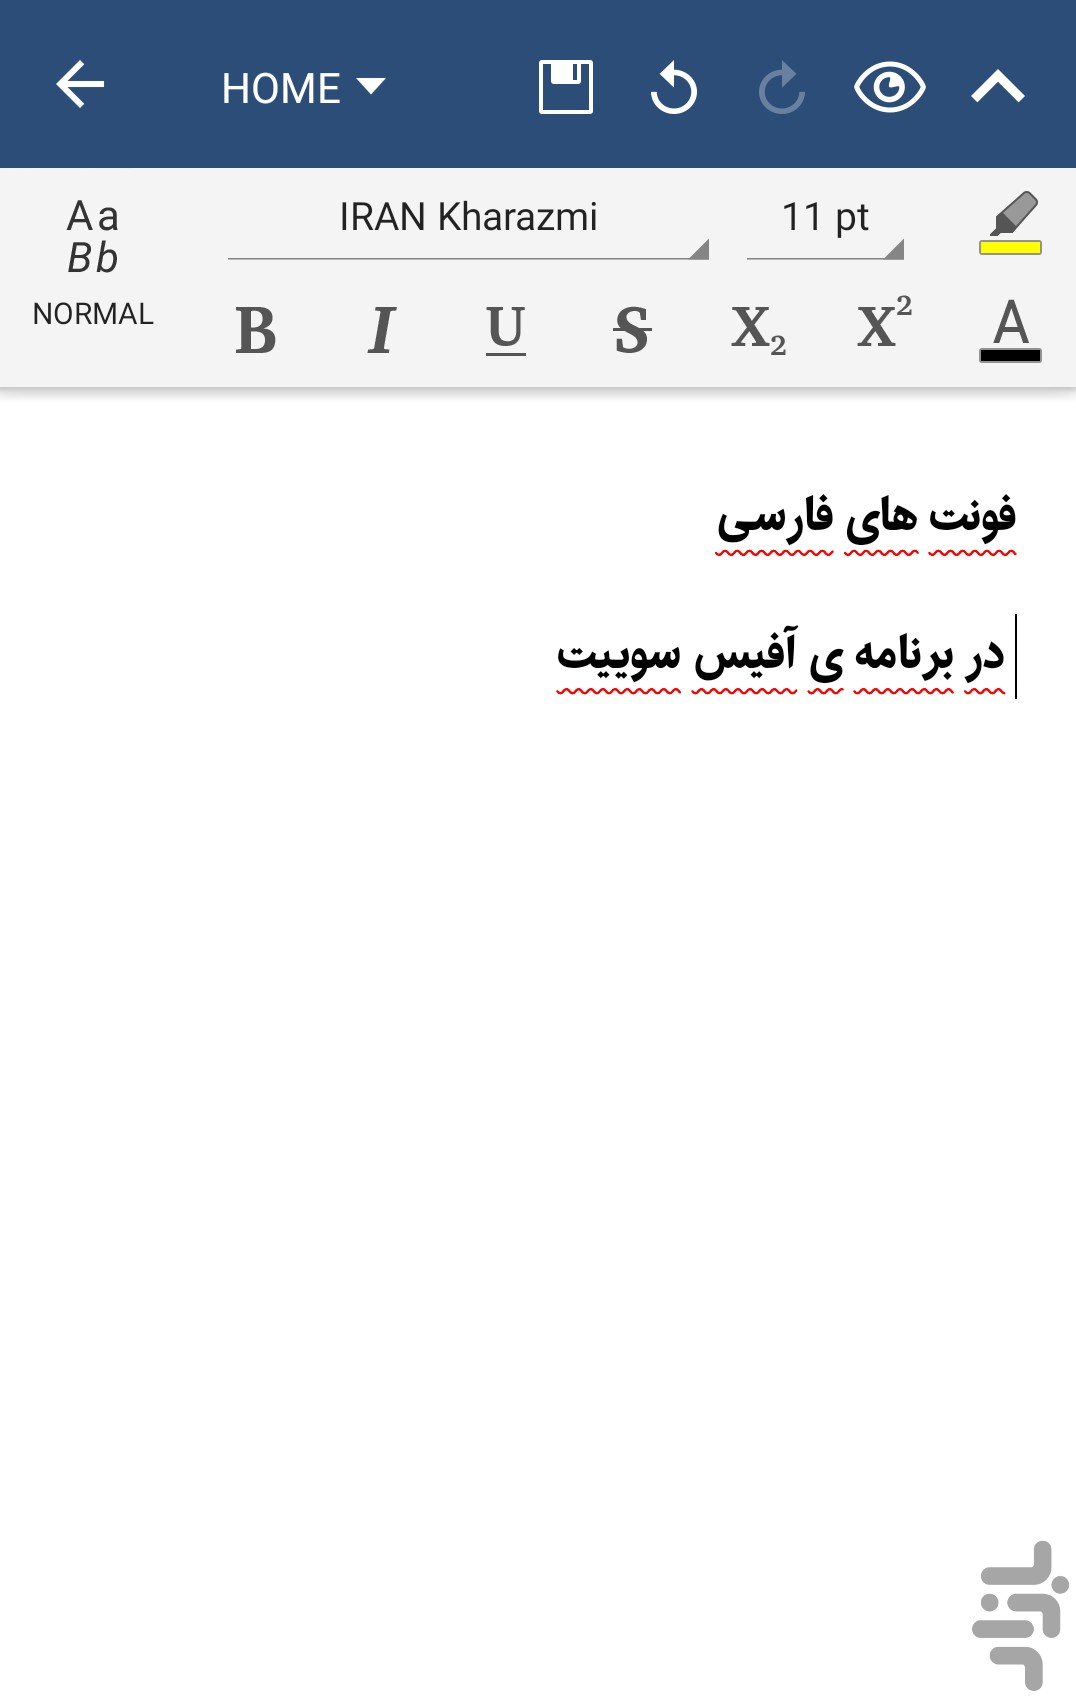 Download OfficeSuite Farsi Font Pack - Download | Install Android ...